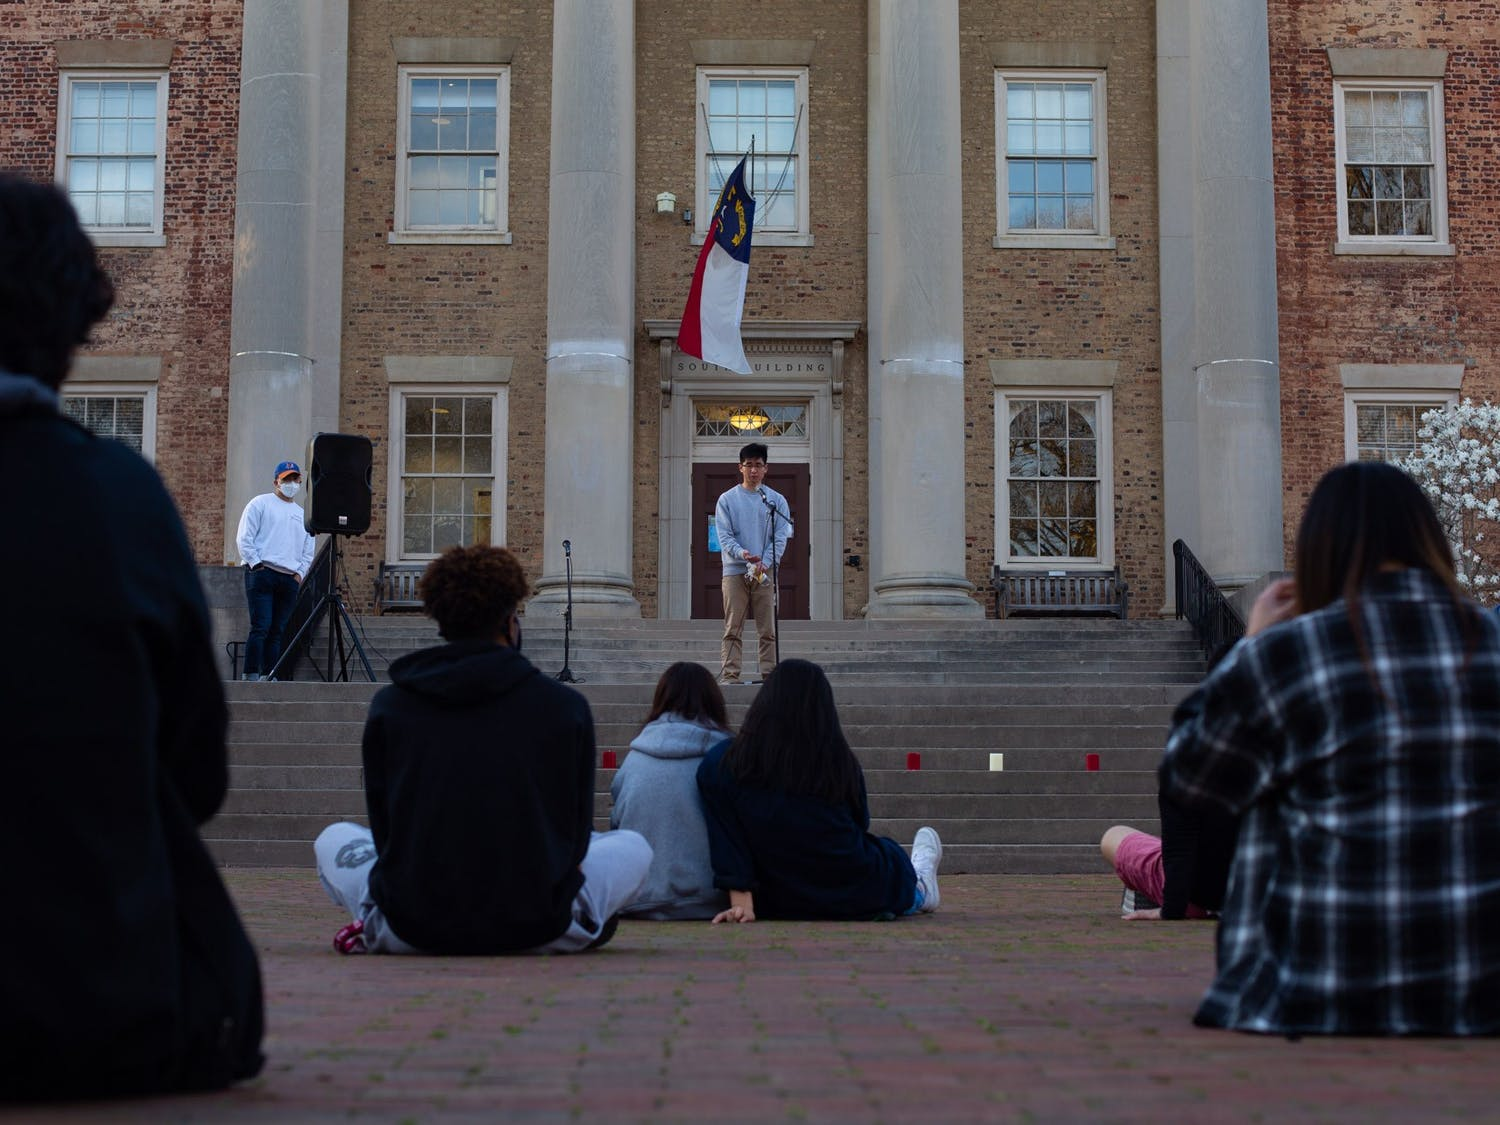 Students and alumni sit together to listen to other members of Chapel HIll community in honor of the 8 lives lost in Atlanta on March 16, 2021.